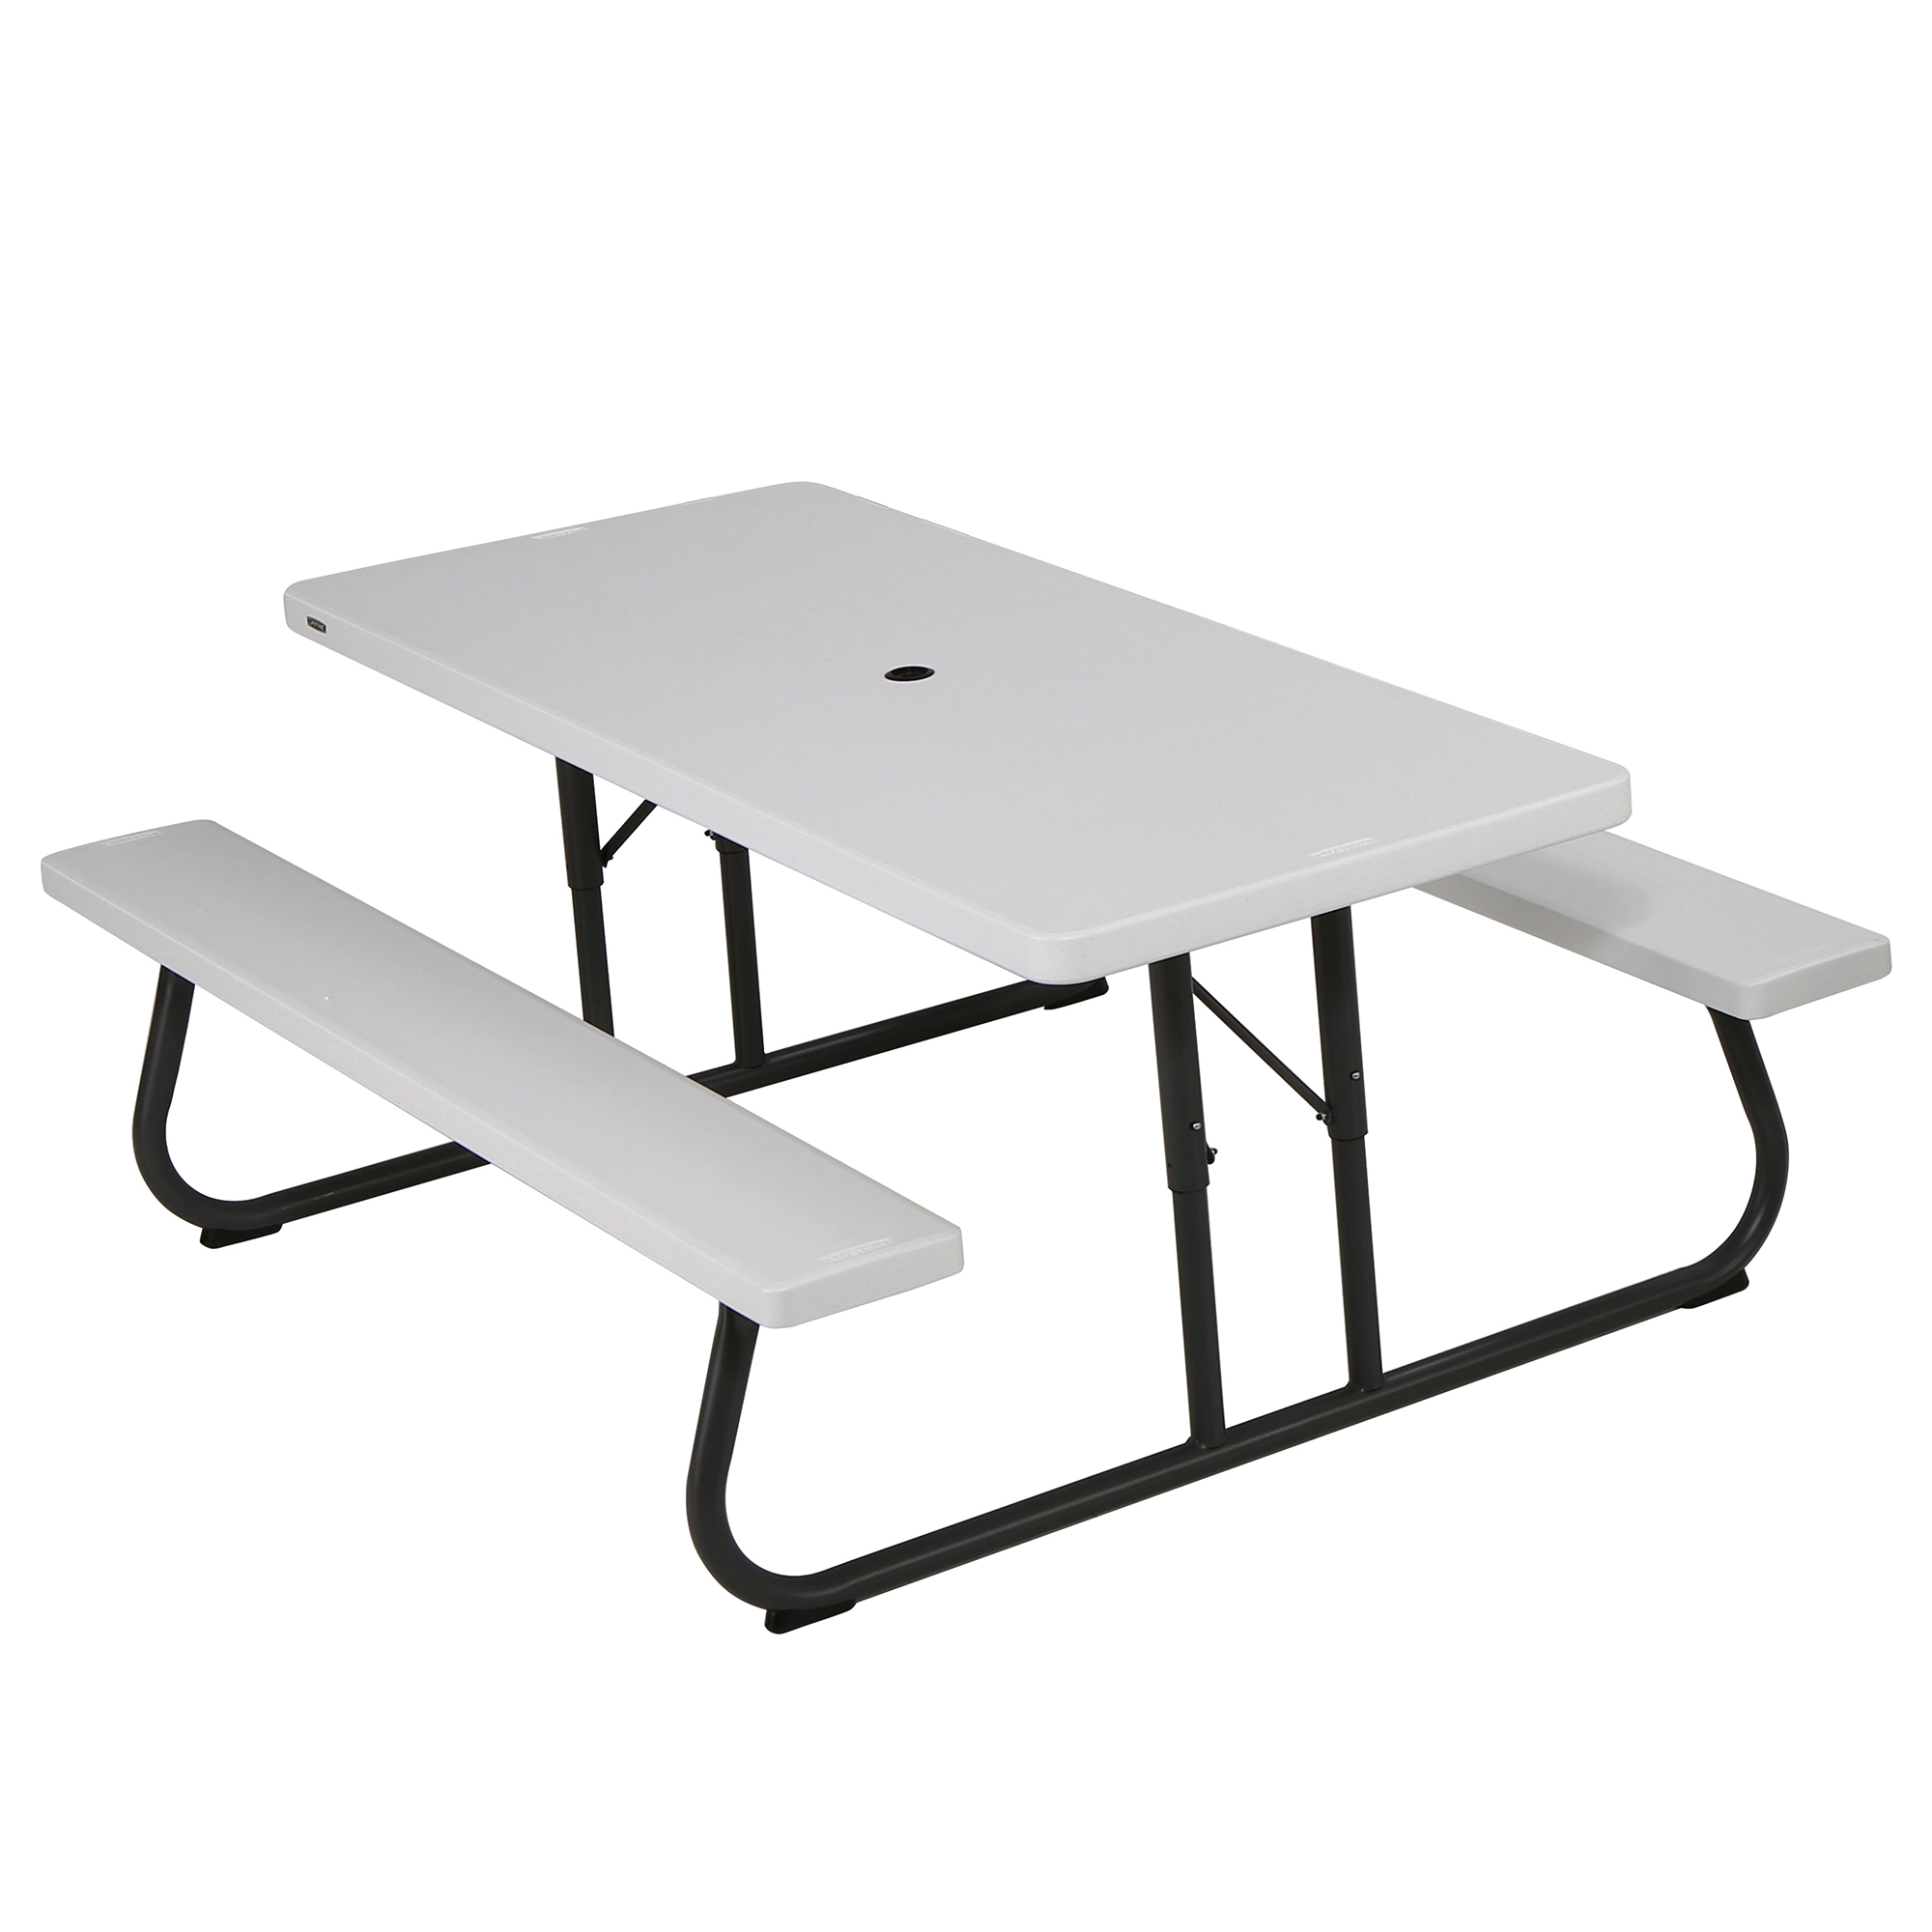 Attrayant Lifetime 6 Foot Picnic Table, White Granite, 80215